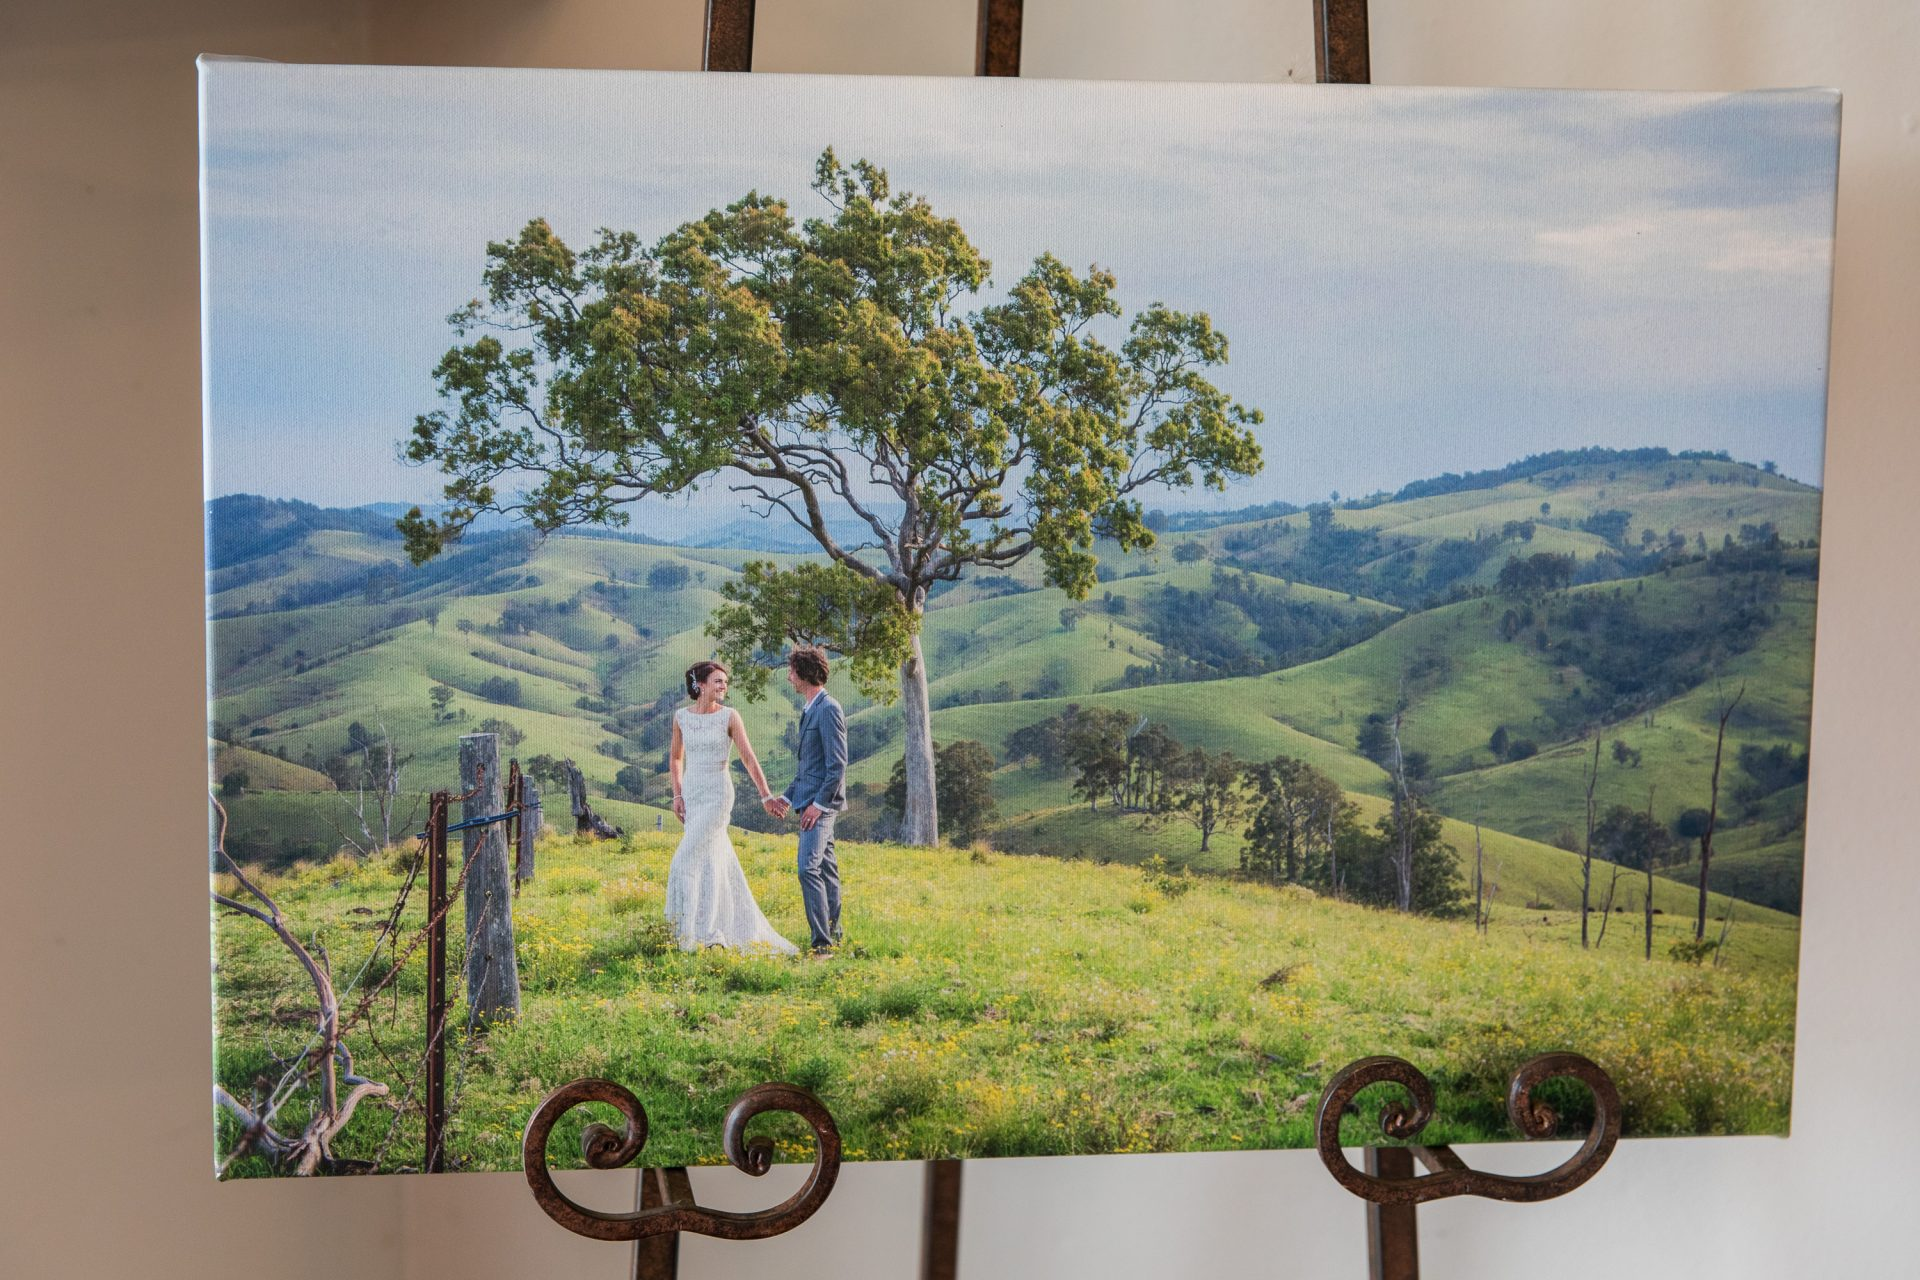 Canvas of Bride and groom hunter valley wedding - the happy couple are in focus amongst the trees rolling hills in background.